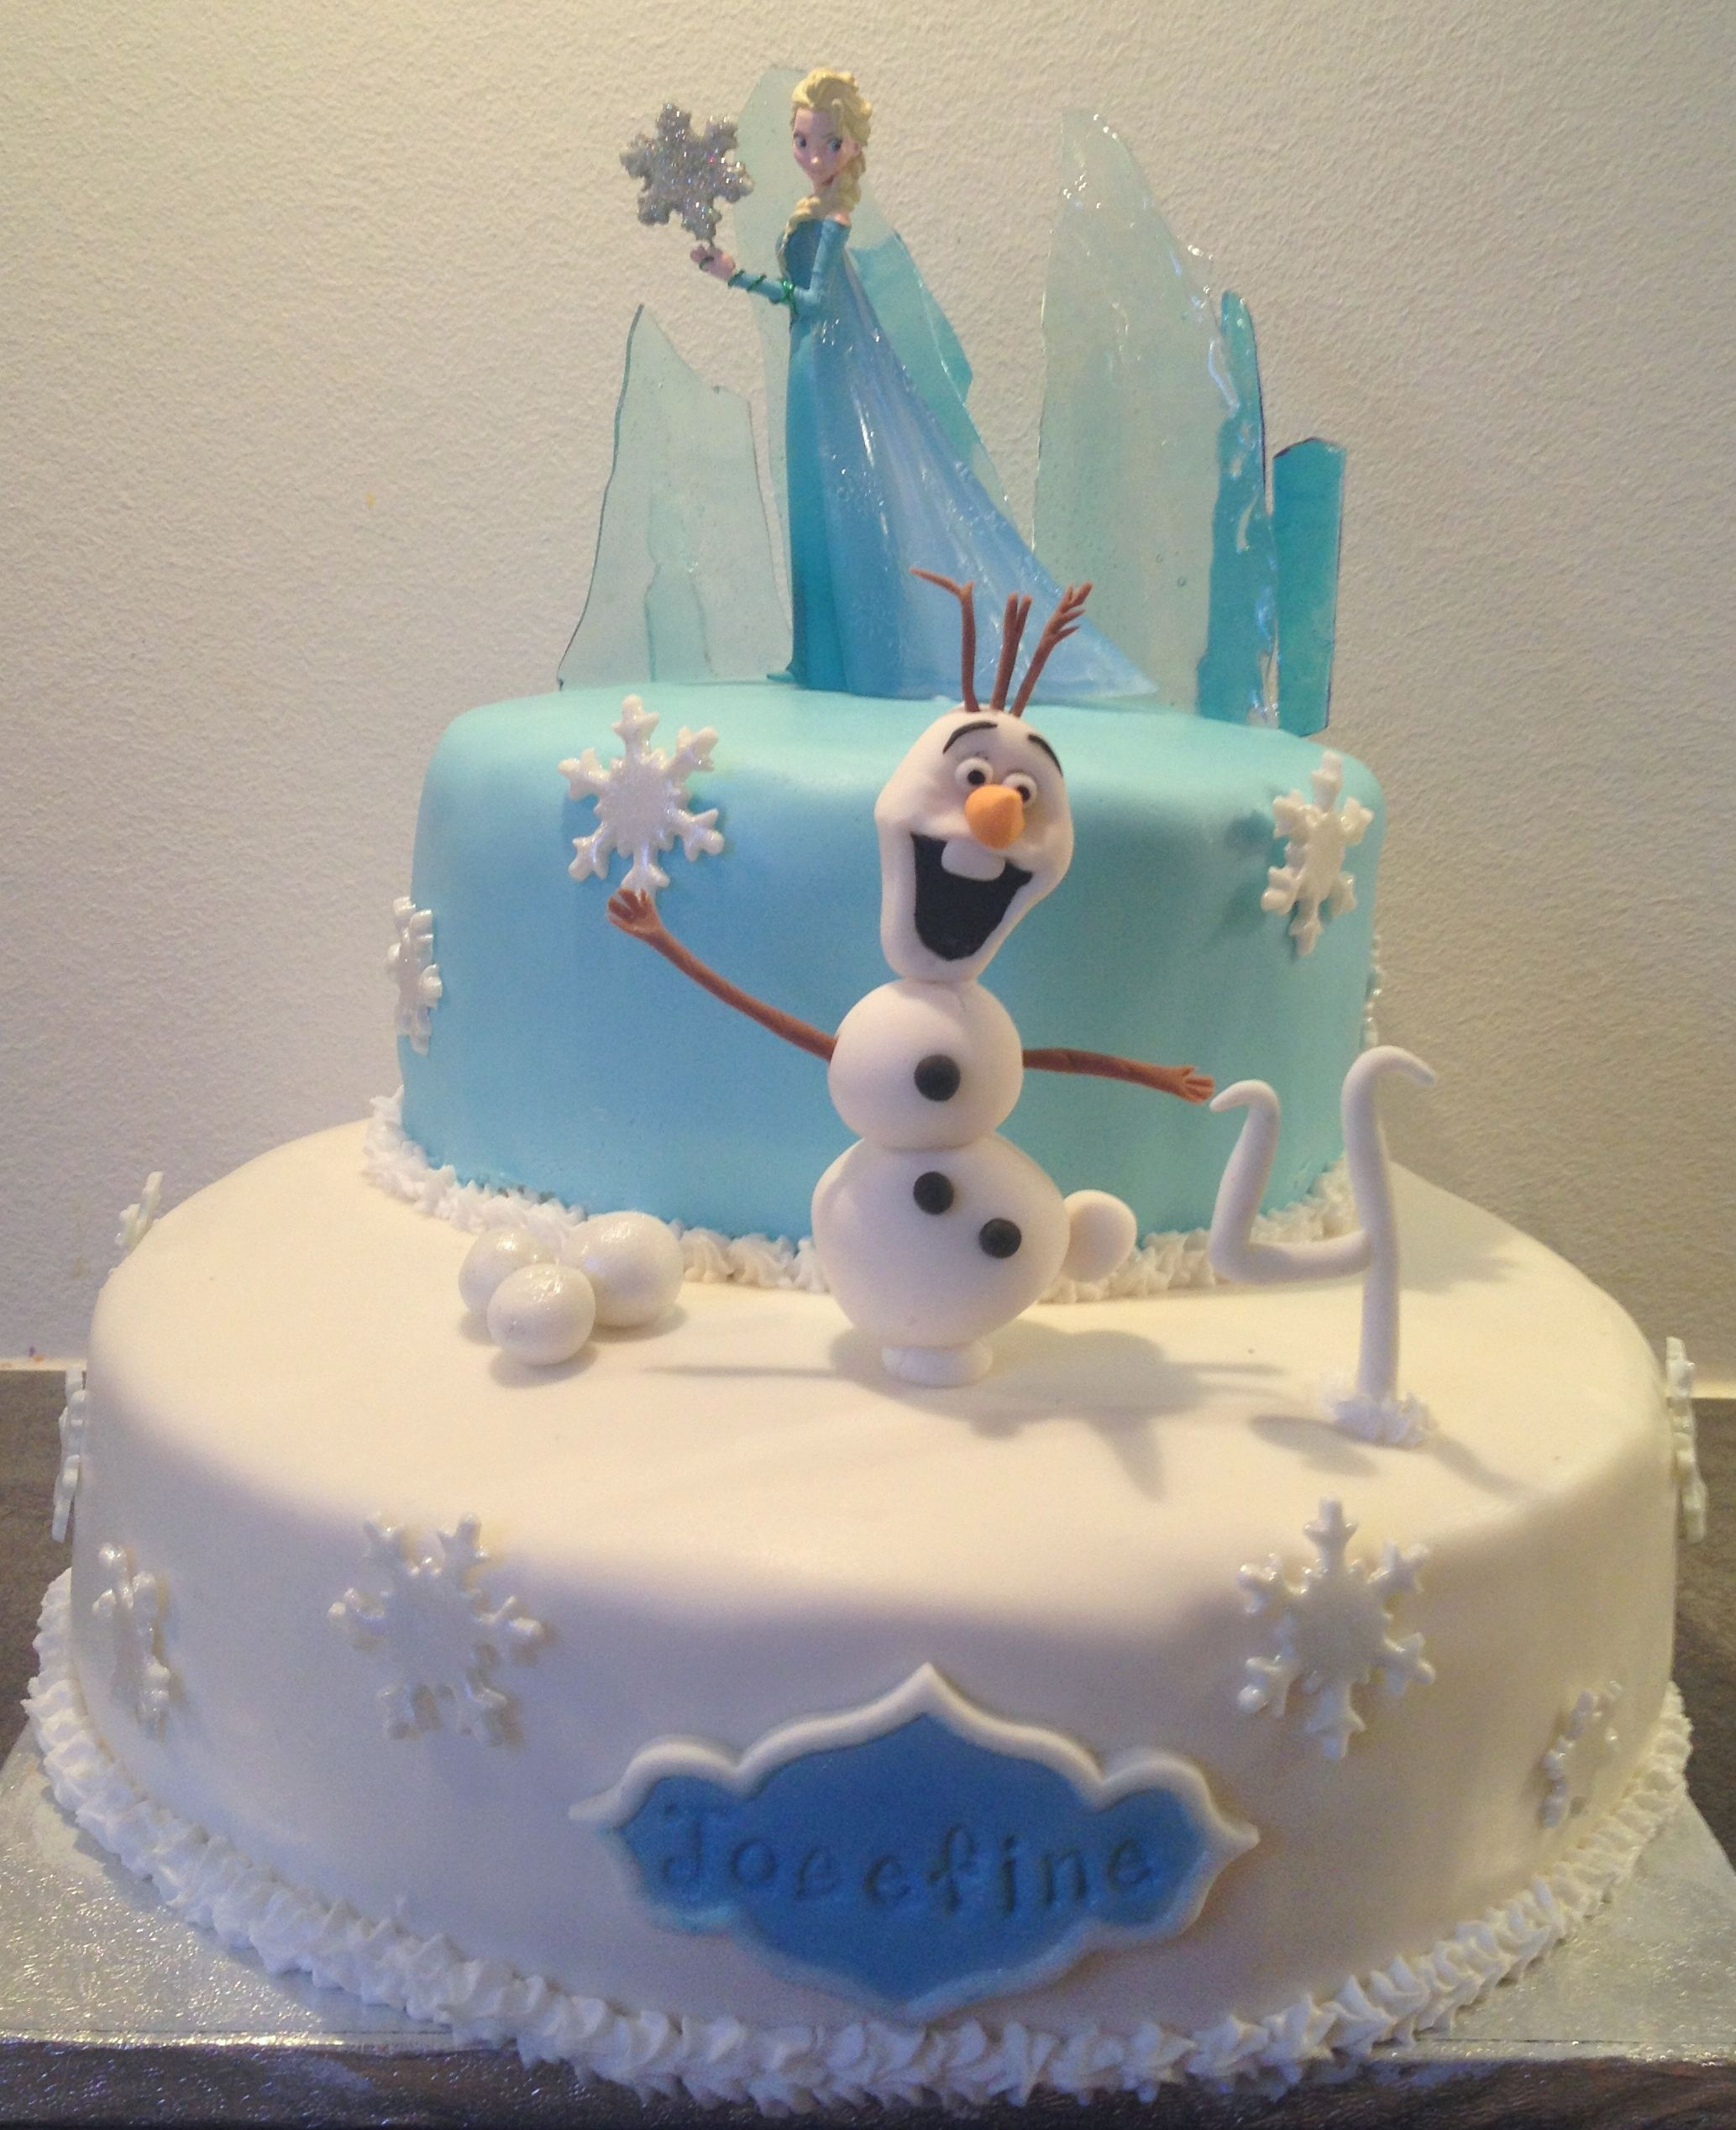 Every little girl's dreamcake atm ;) Frozen, need I say more?